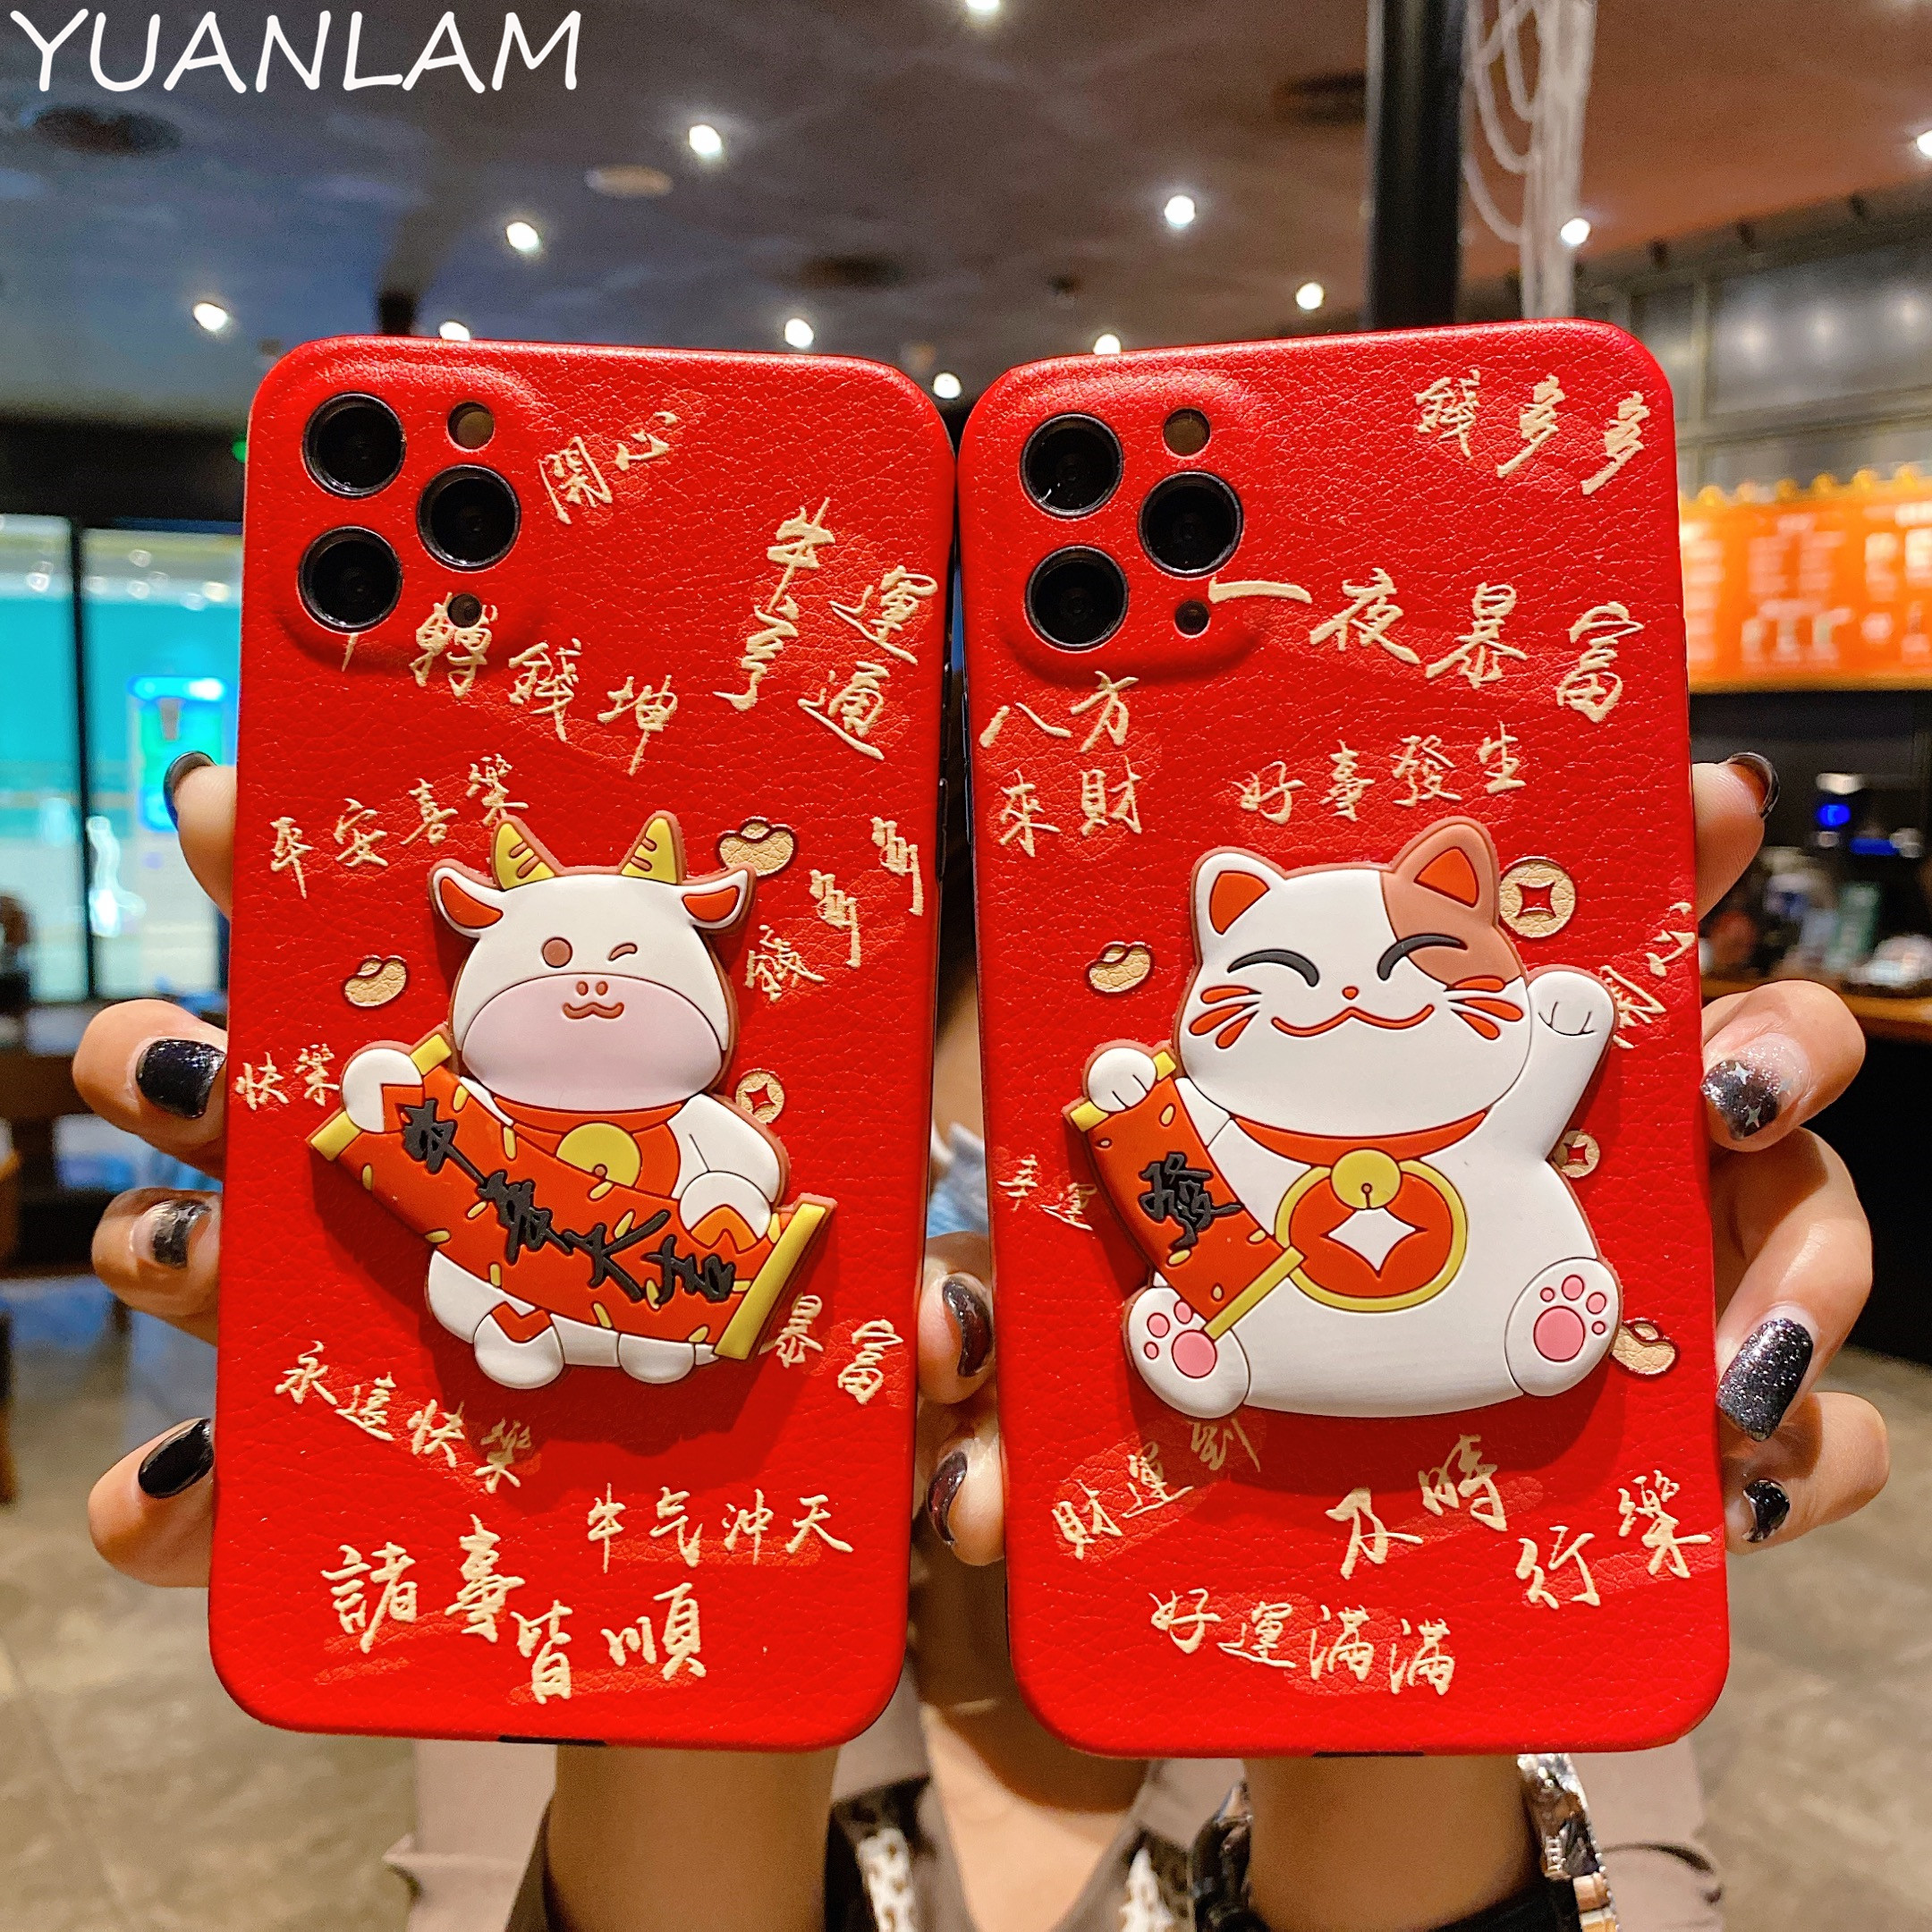 3D Lucky Cat Milk Cow Shell For Iphone 12 11 Pro Max XS MAX XR Luxury Leather Soft Back Cover For Iphone X 8 7 Plus SE2 12 Mini